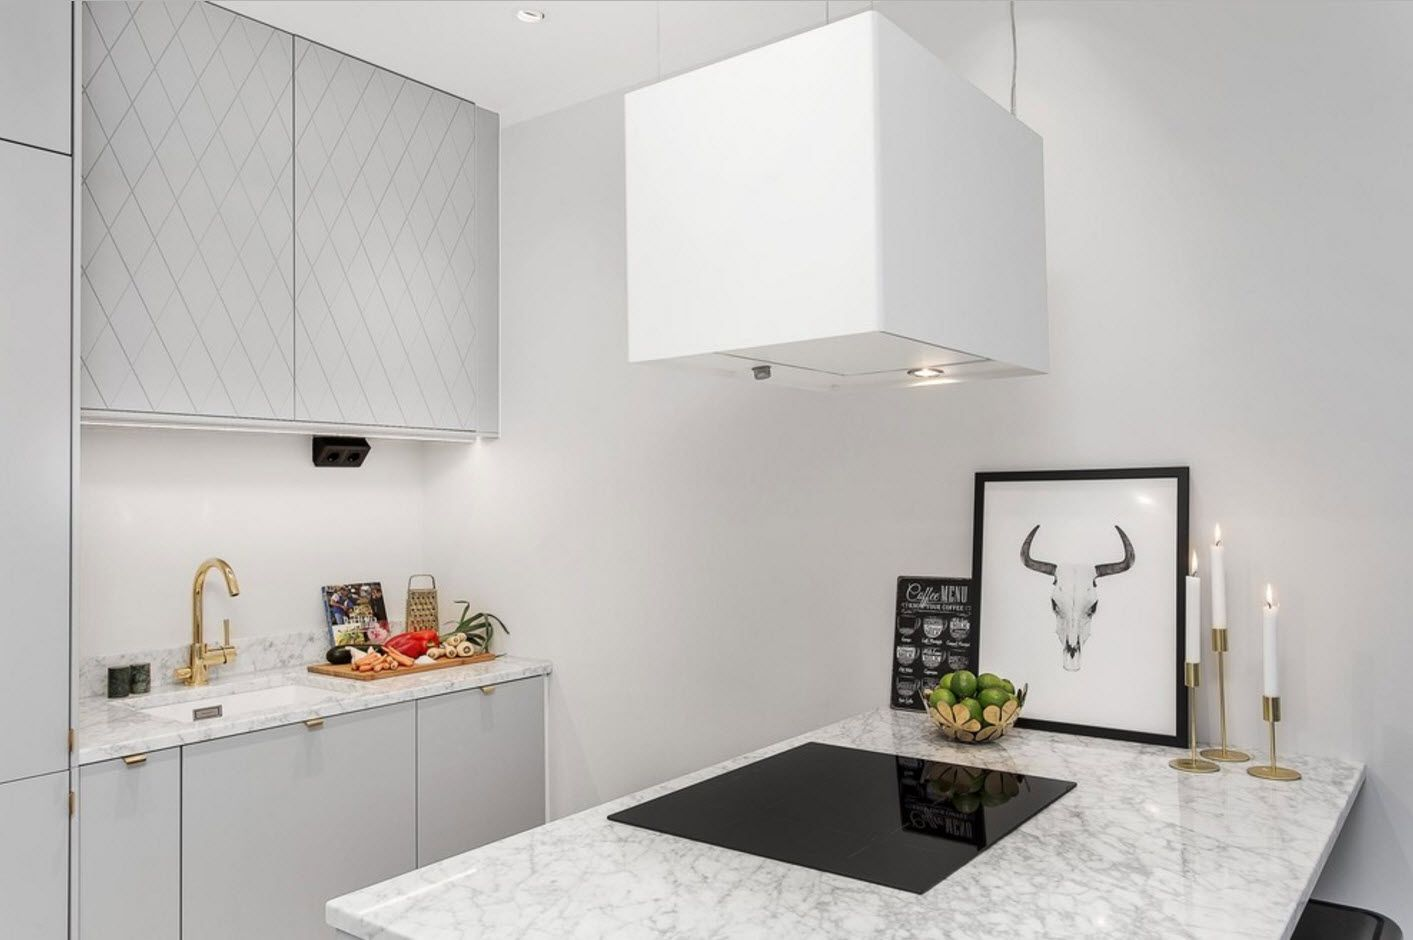 Design for a small kitchen